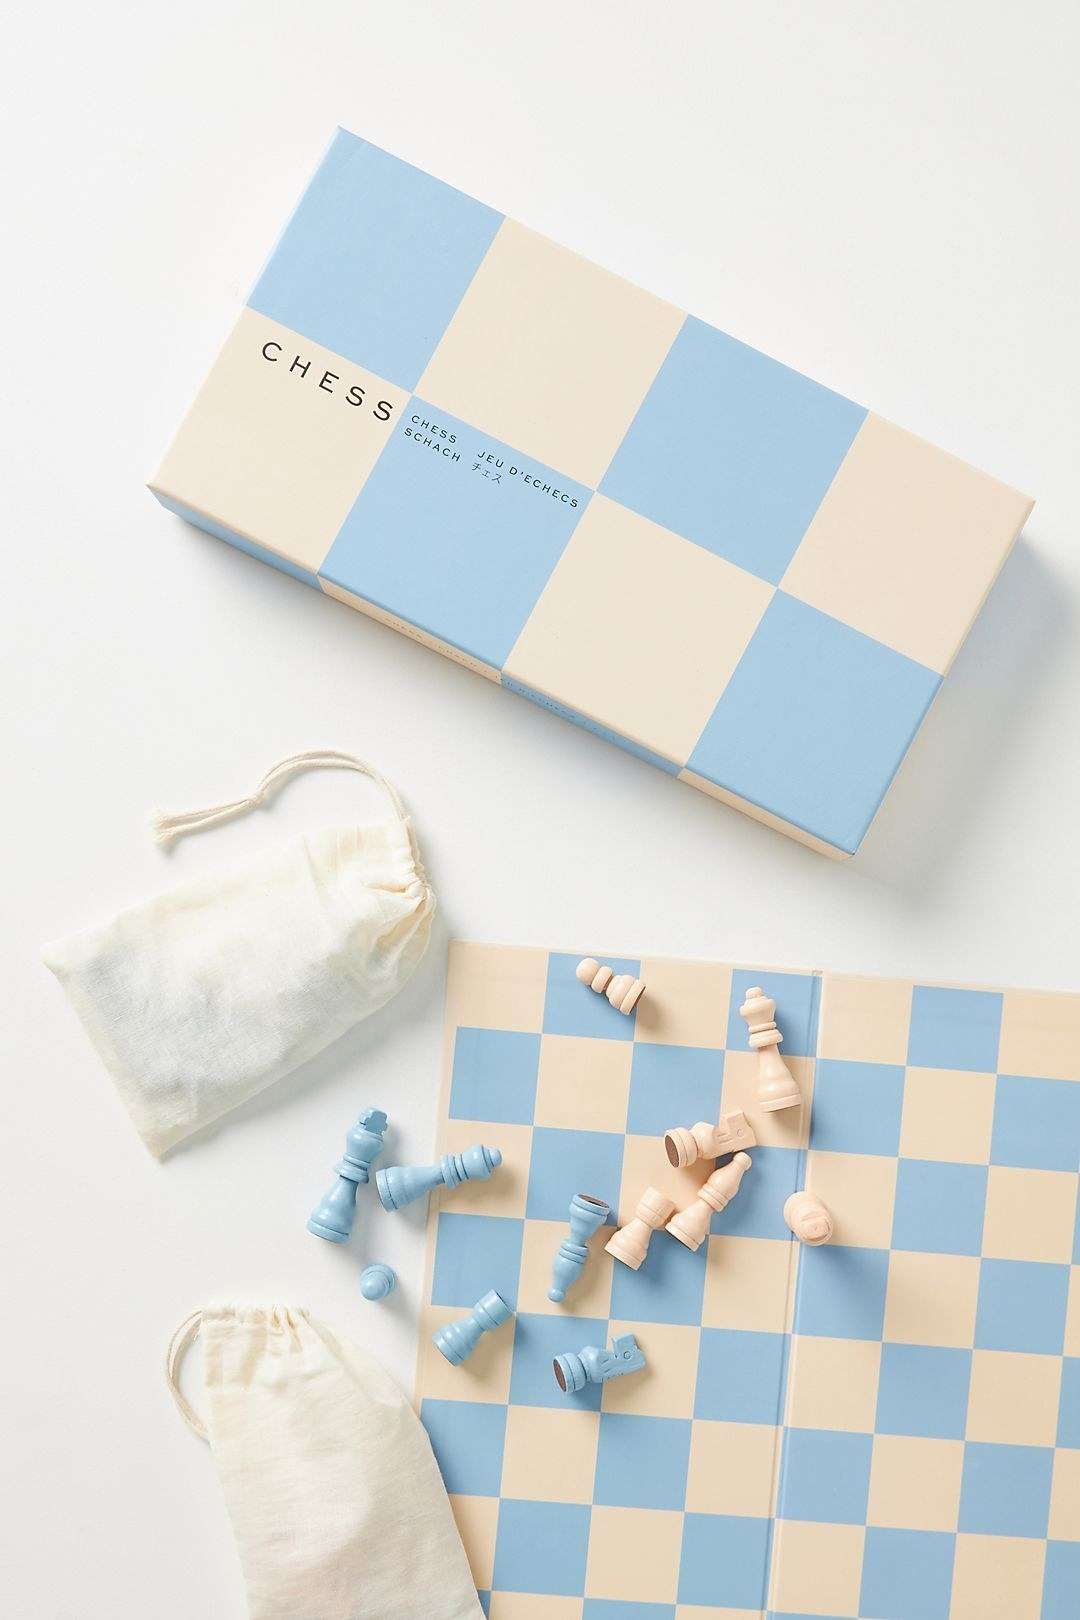 the box, board, and bags for the chess set with the blue and white pieces tossed around